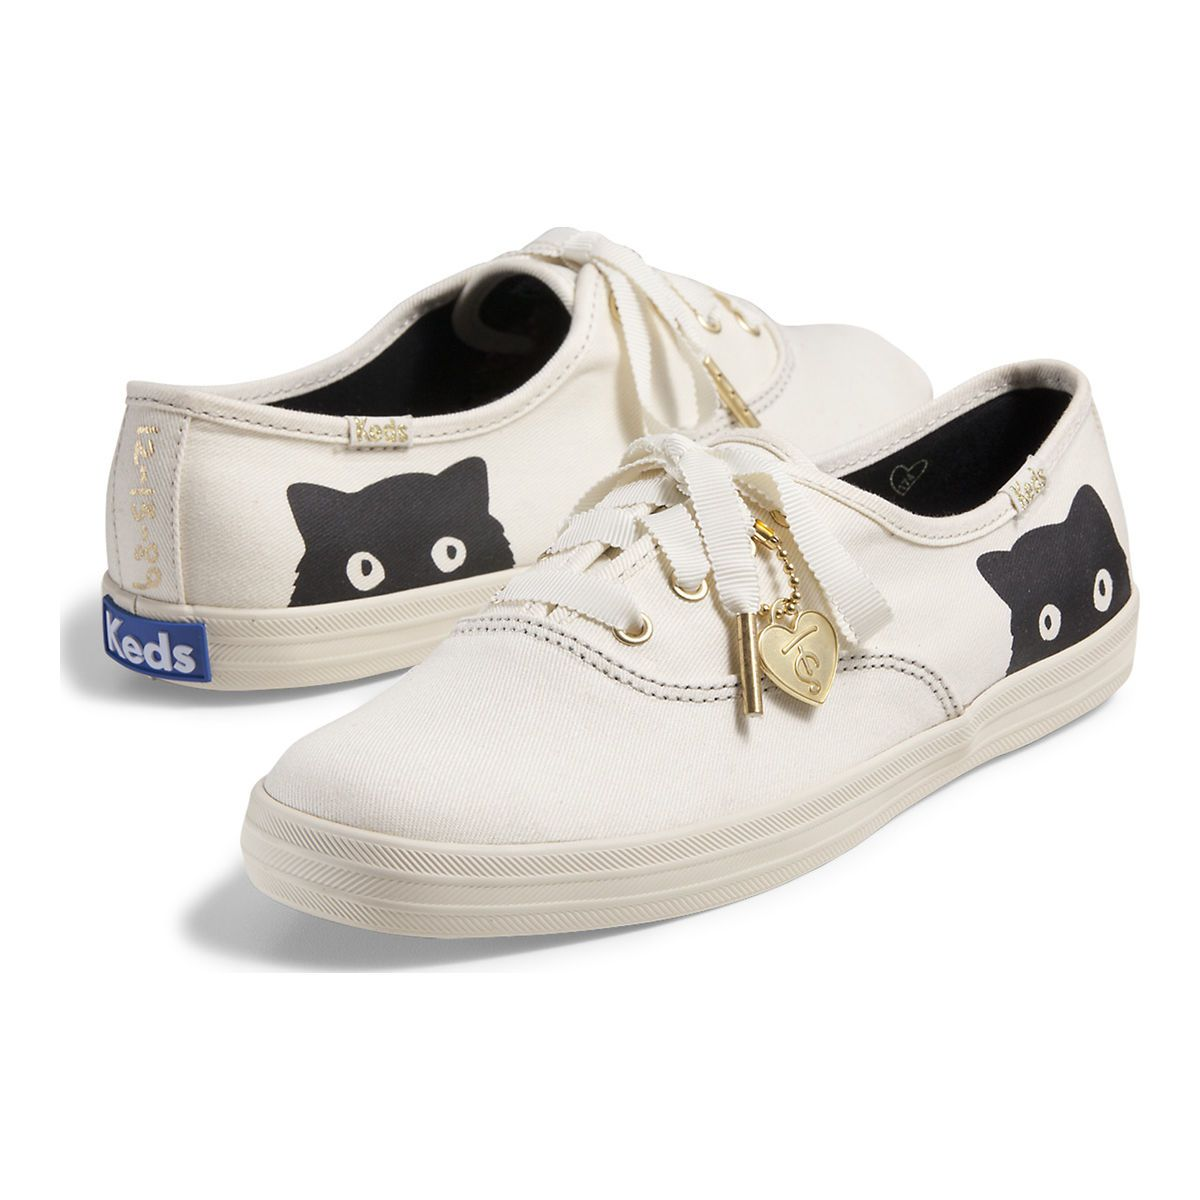 d8b47c51fec Women - Taylor Swift s Champion Sneaky Cat - Cream